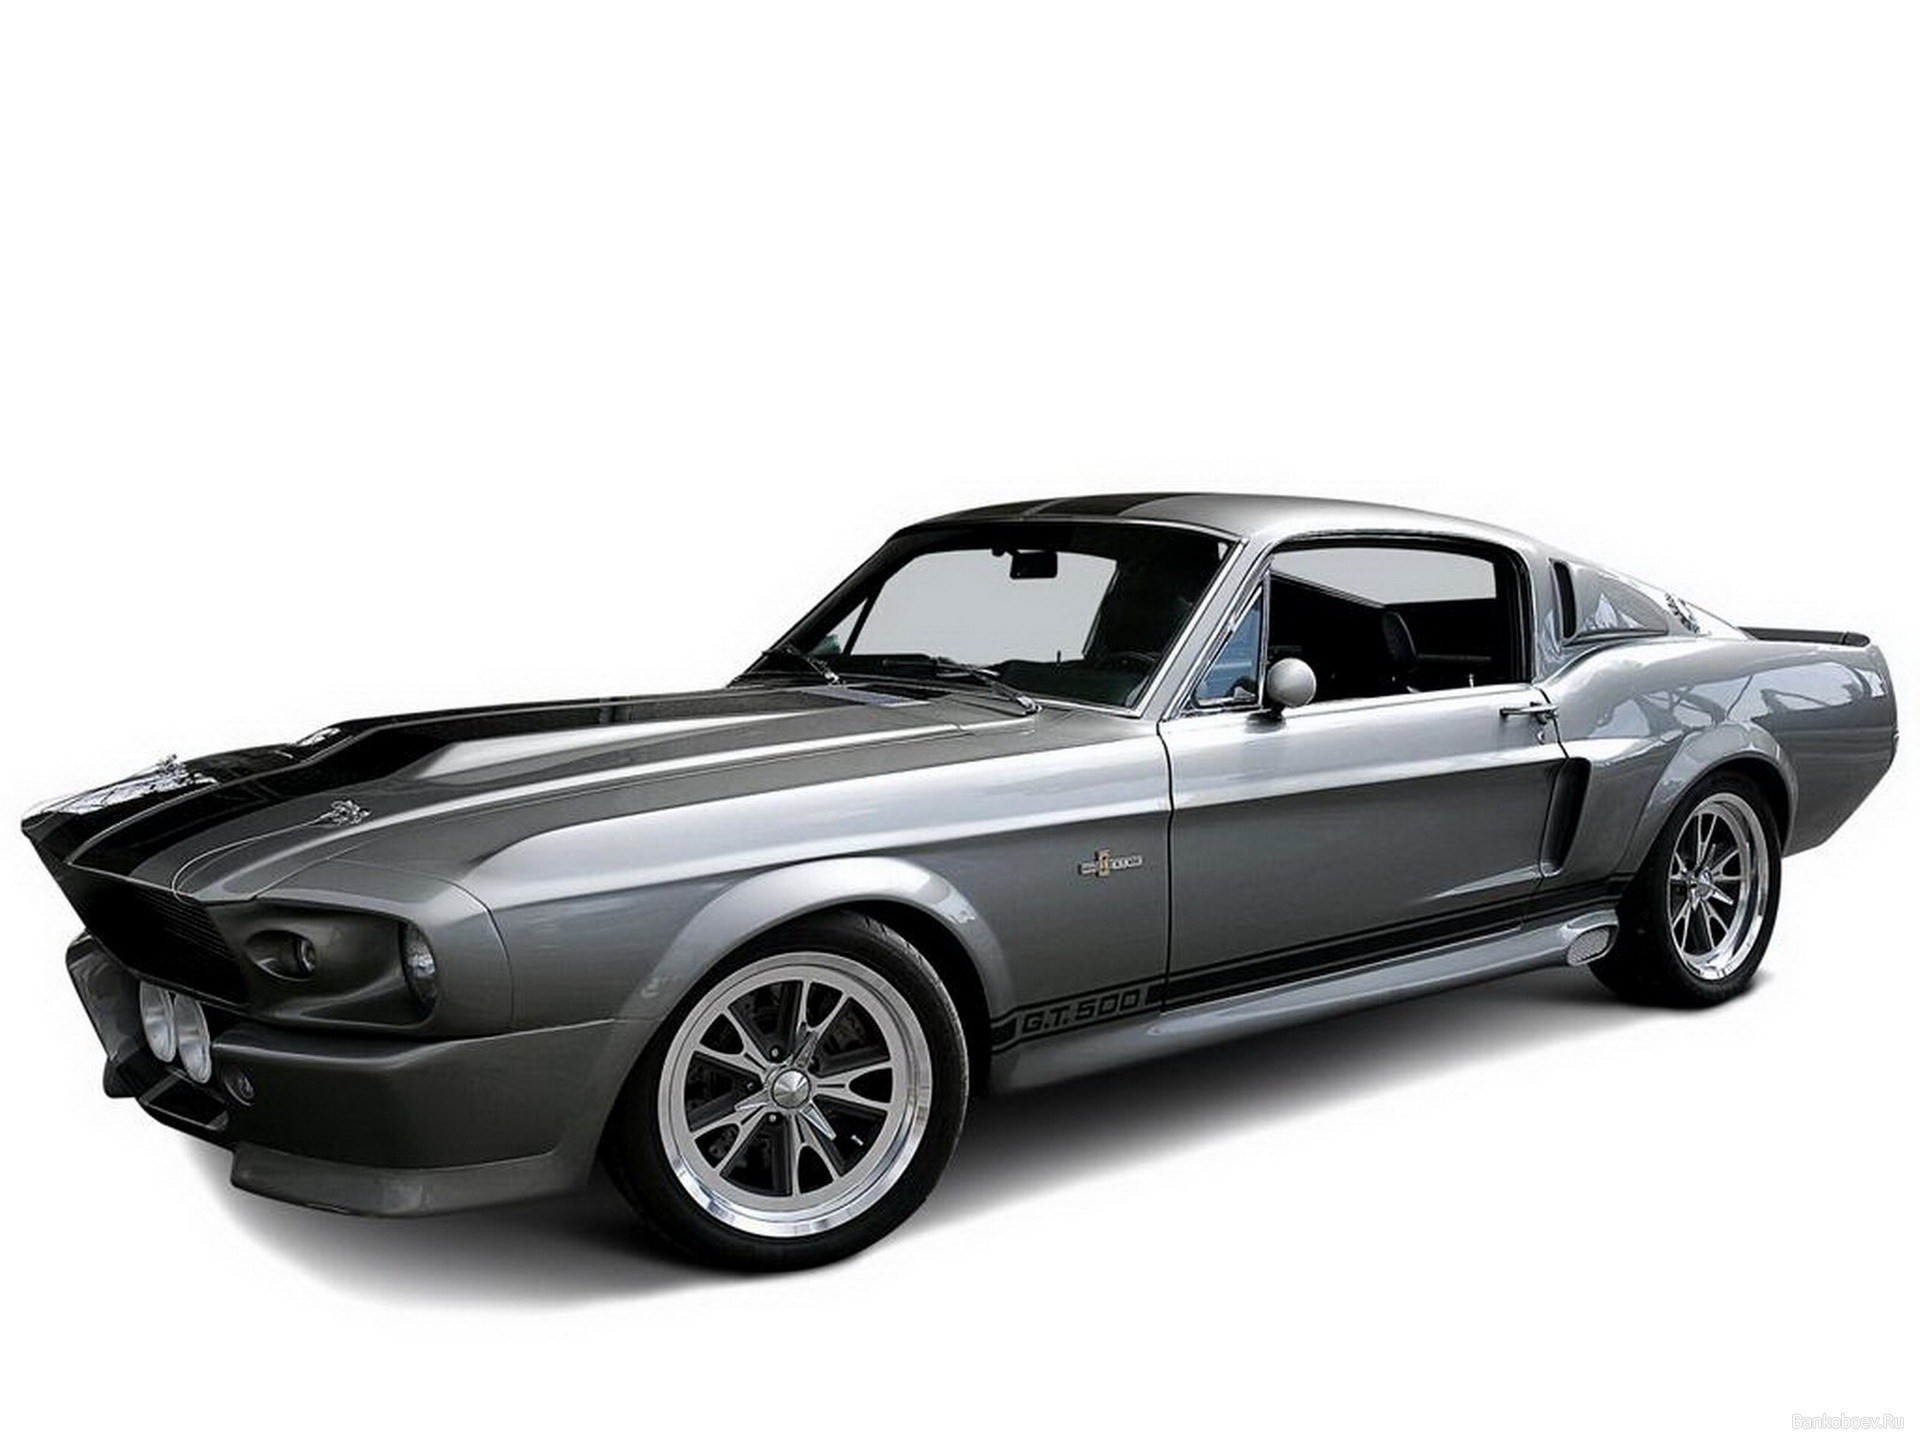 1967 Shelby Gt500 Eleanor Wallpaper (69+ images)